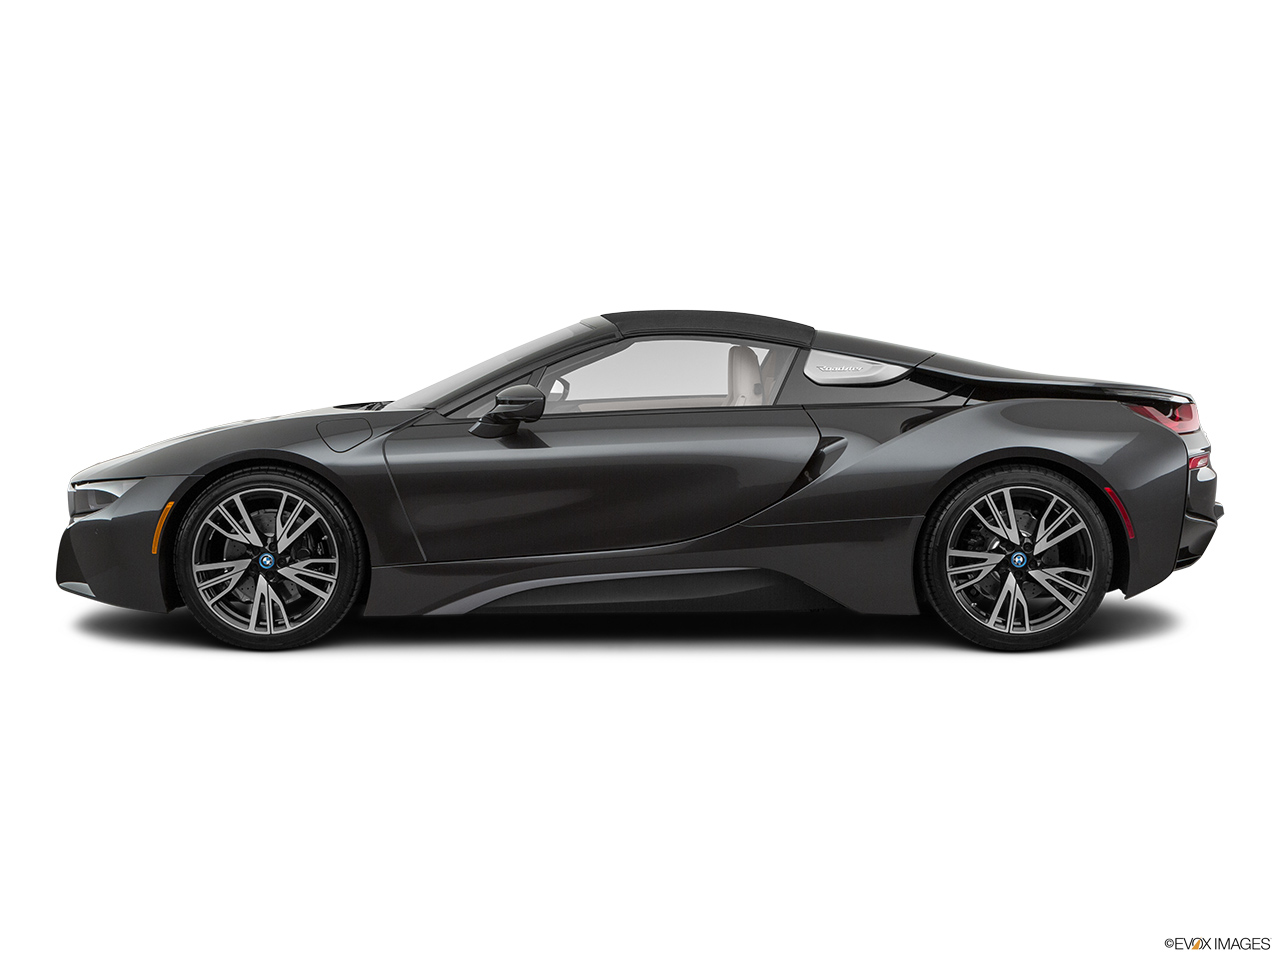 2019 BMW i8 Roadster Standard World Drivers side profile, convertible top up (convertibles only).